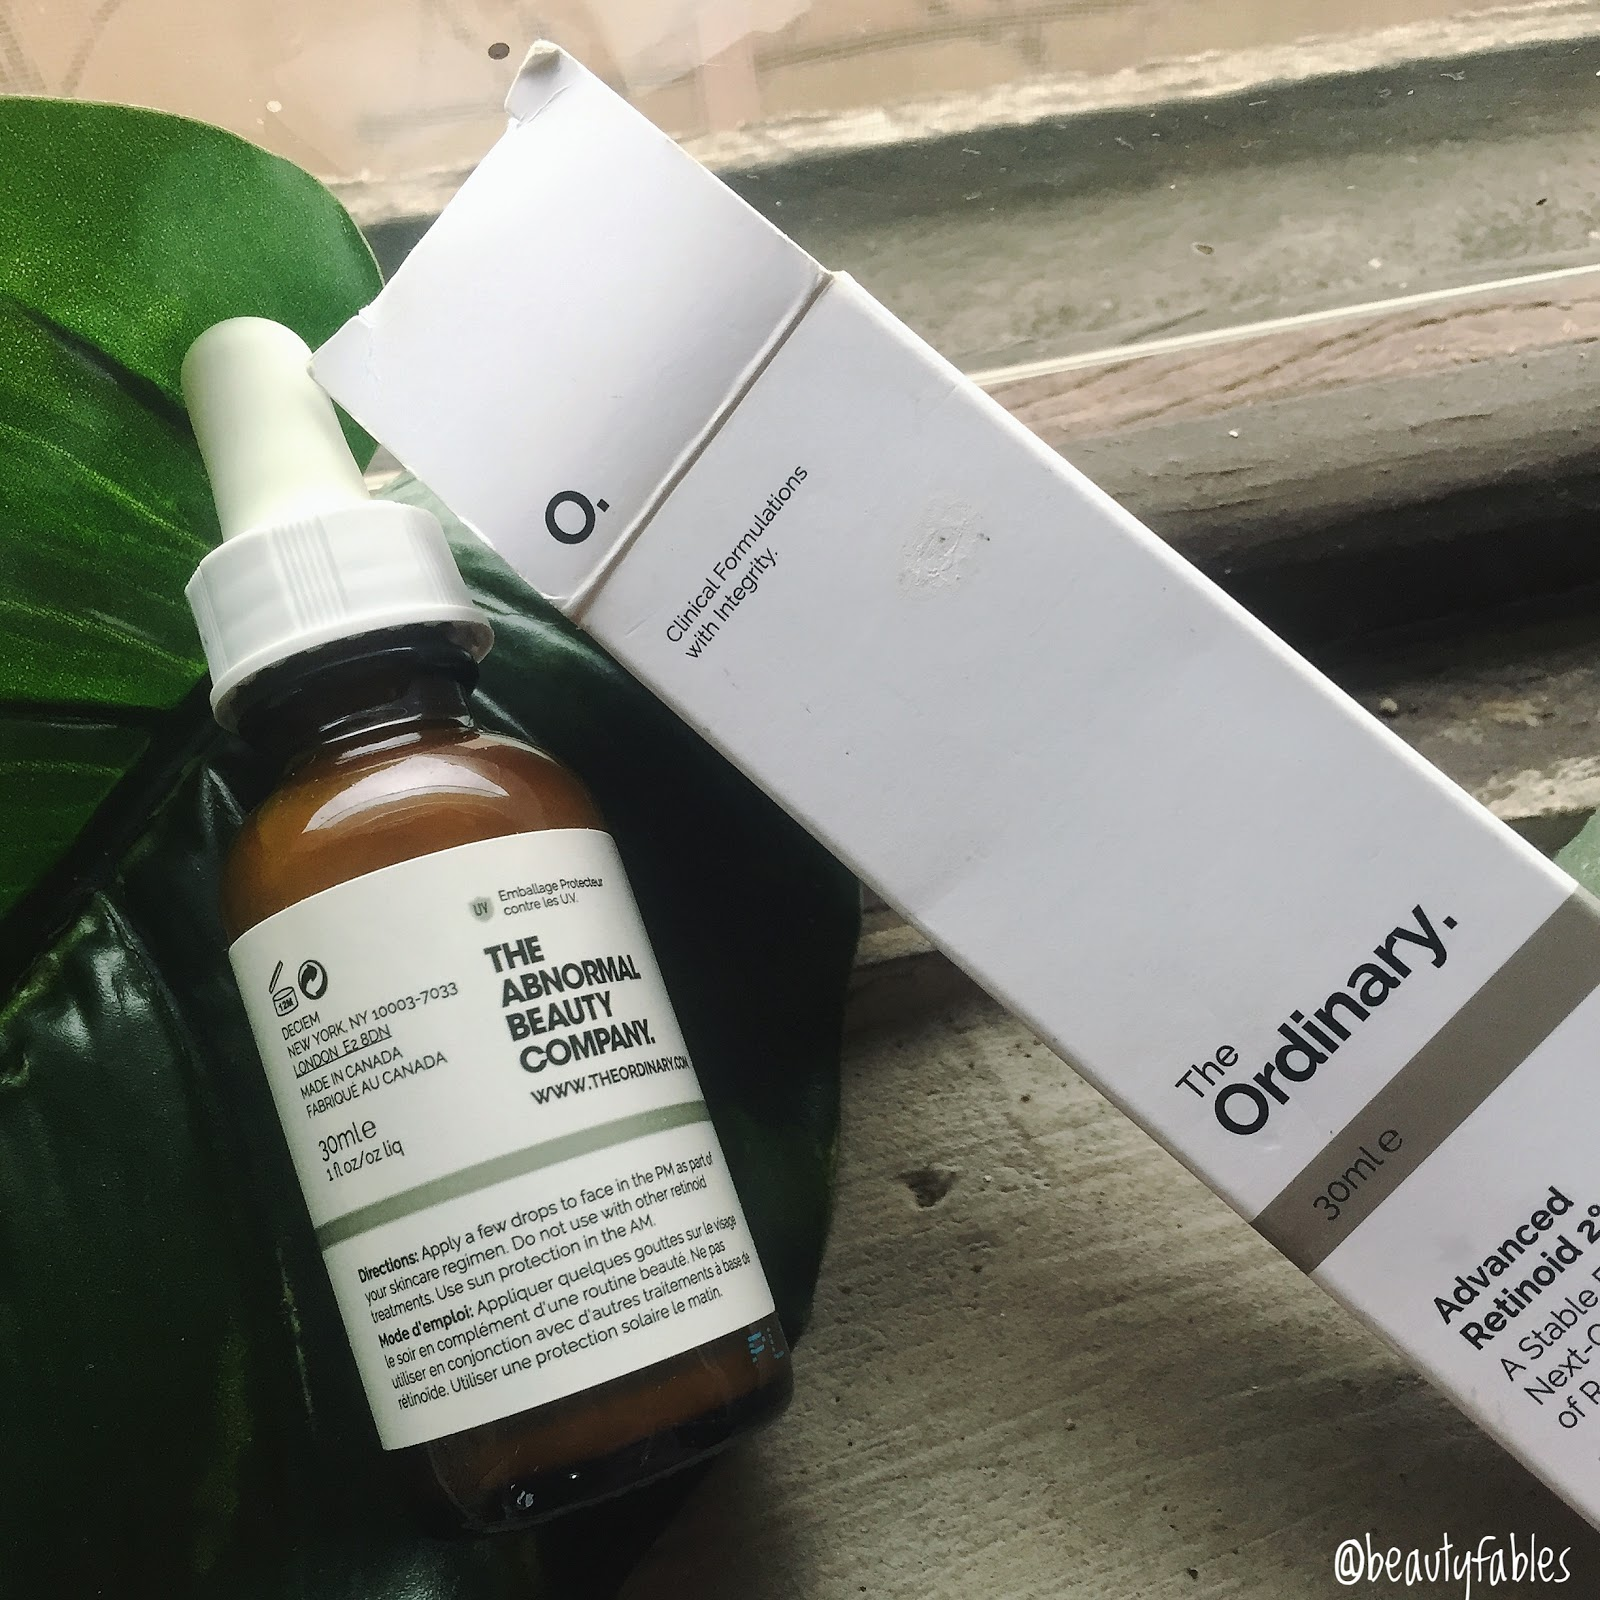 In depth Review of The Advanced Retinoid 2% by The Ordinary Abnormal Beauty Company DECIEM